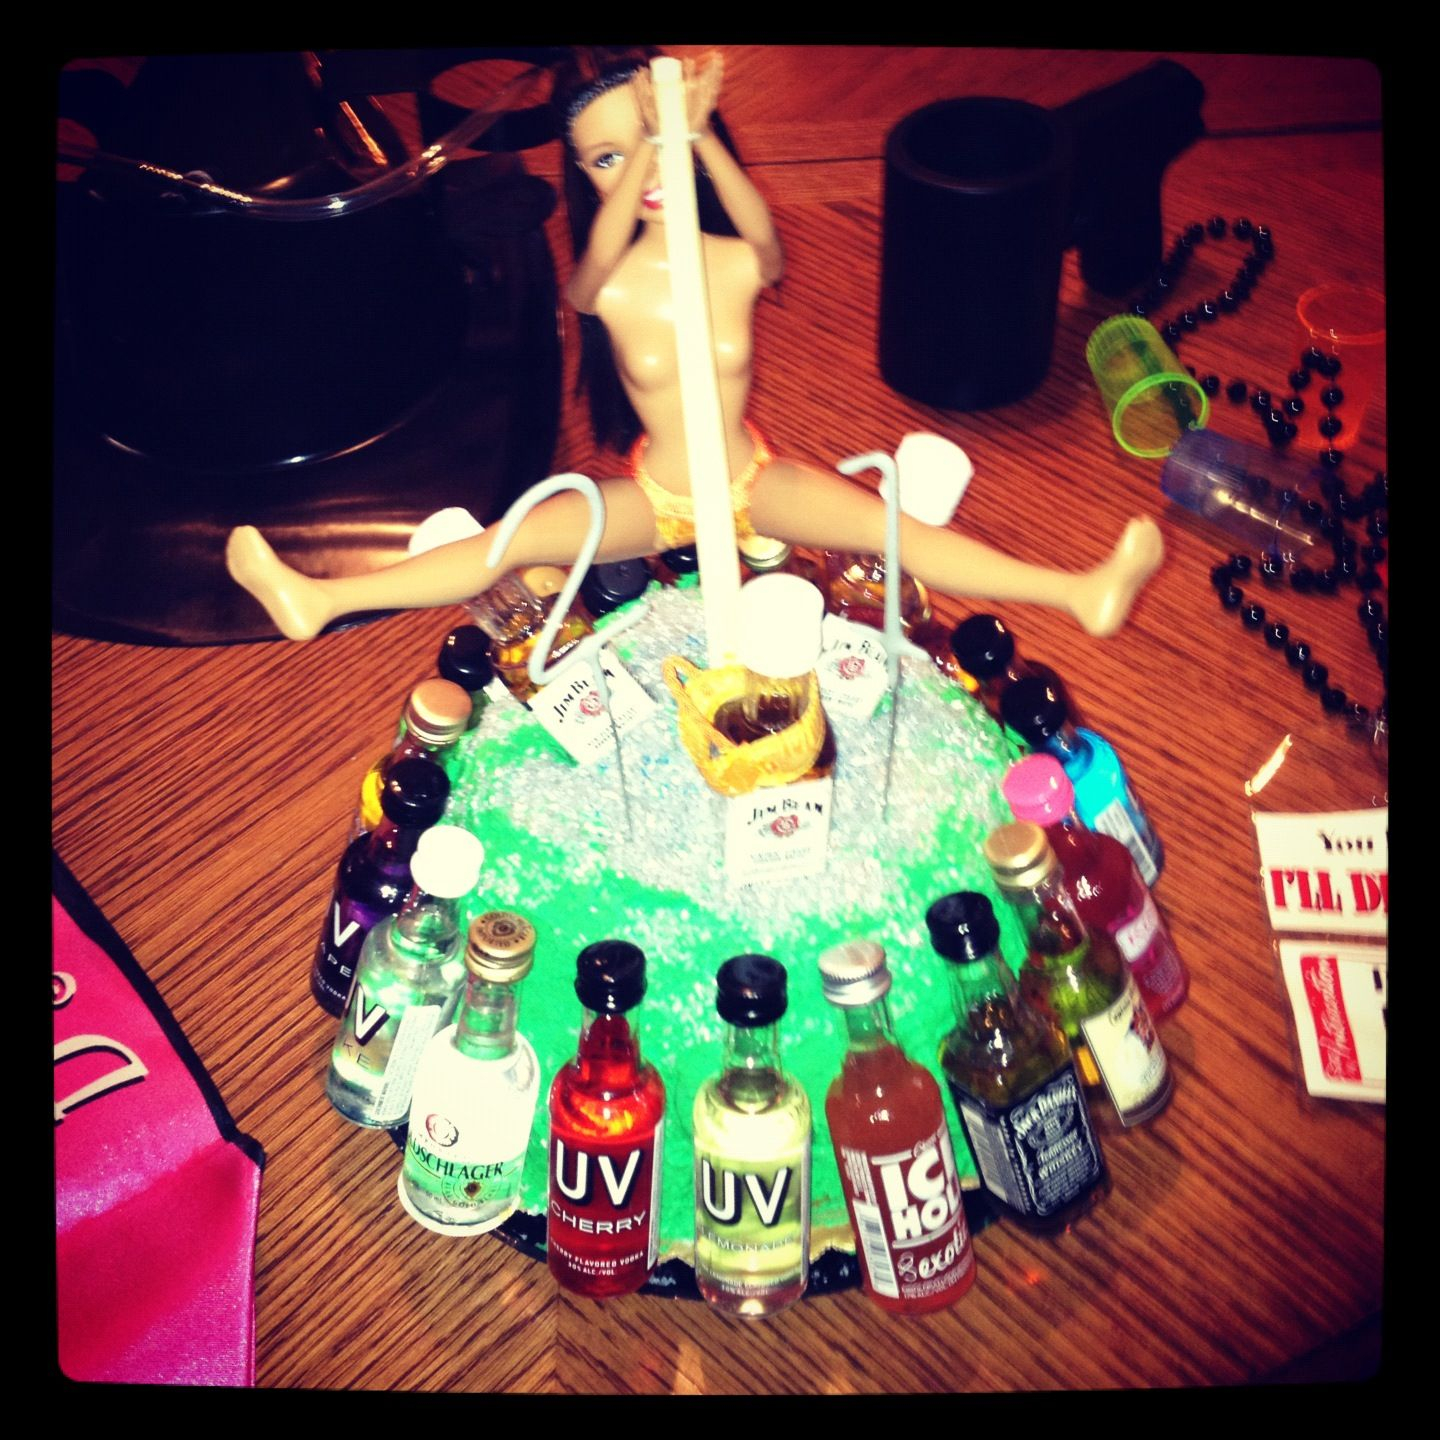 21st Birthday Cakes For Him 21st Birthday Cake For A Guy Friend 21shots And A Stripperim Birijus Com